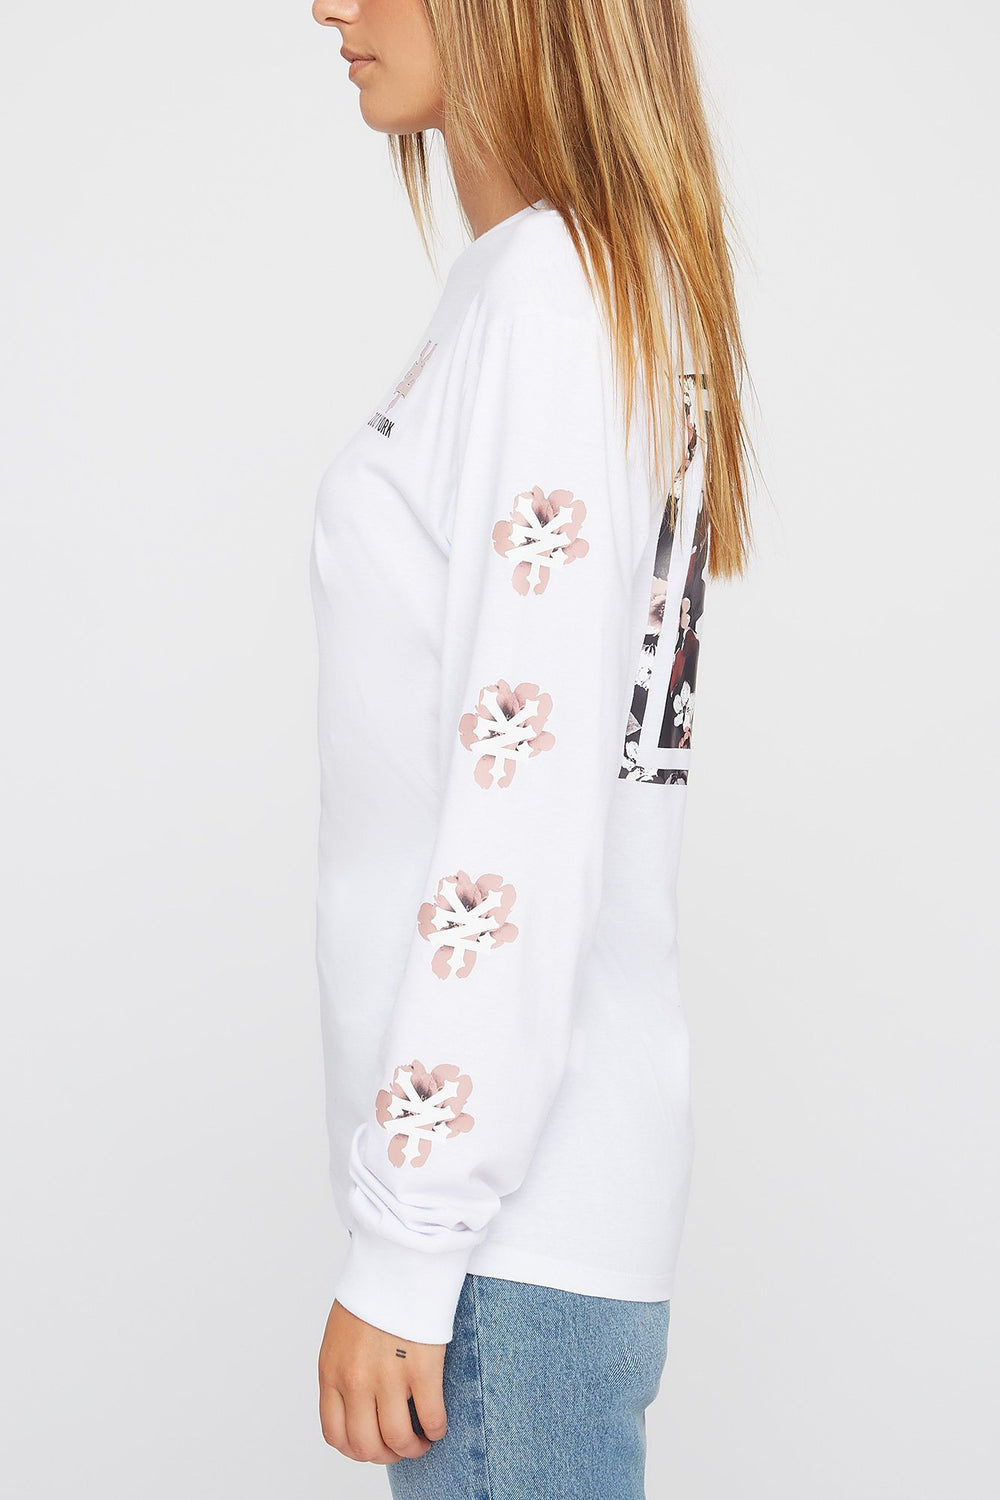 Zoo York Womens Floral Long Sleeve Shirt White